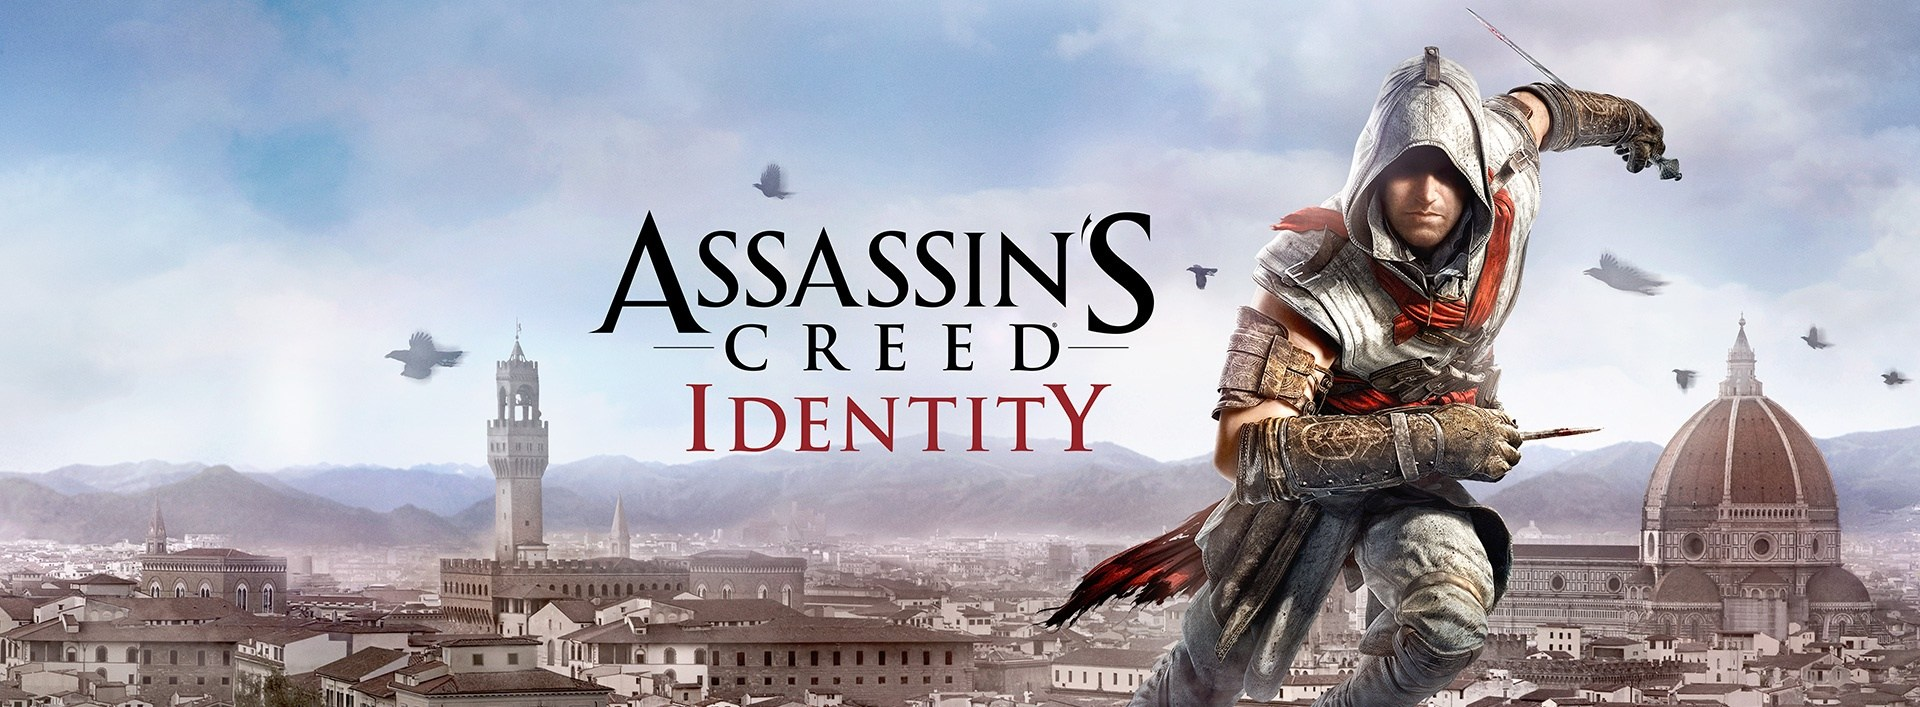 Assassin's Creed Identity sortira bien sur Android d'ici quelques semaines